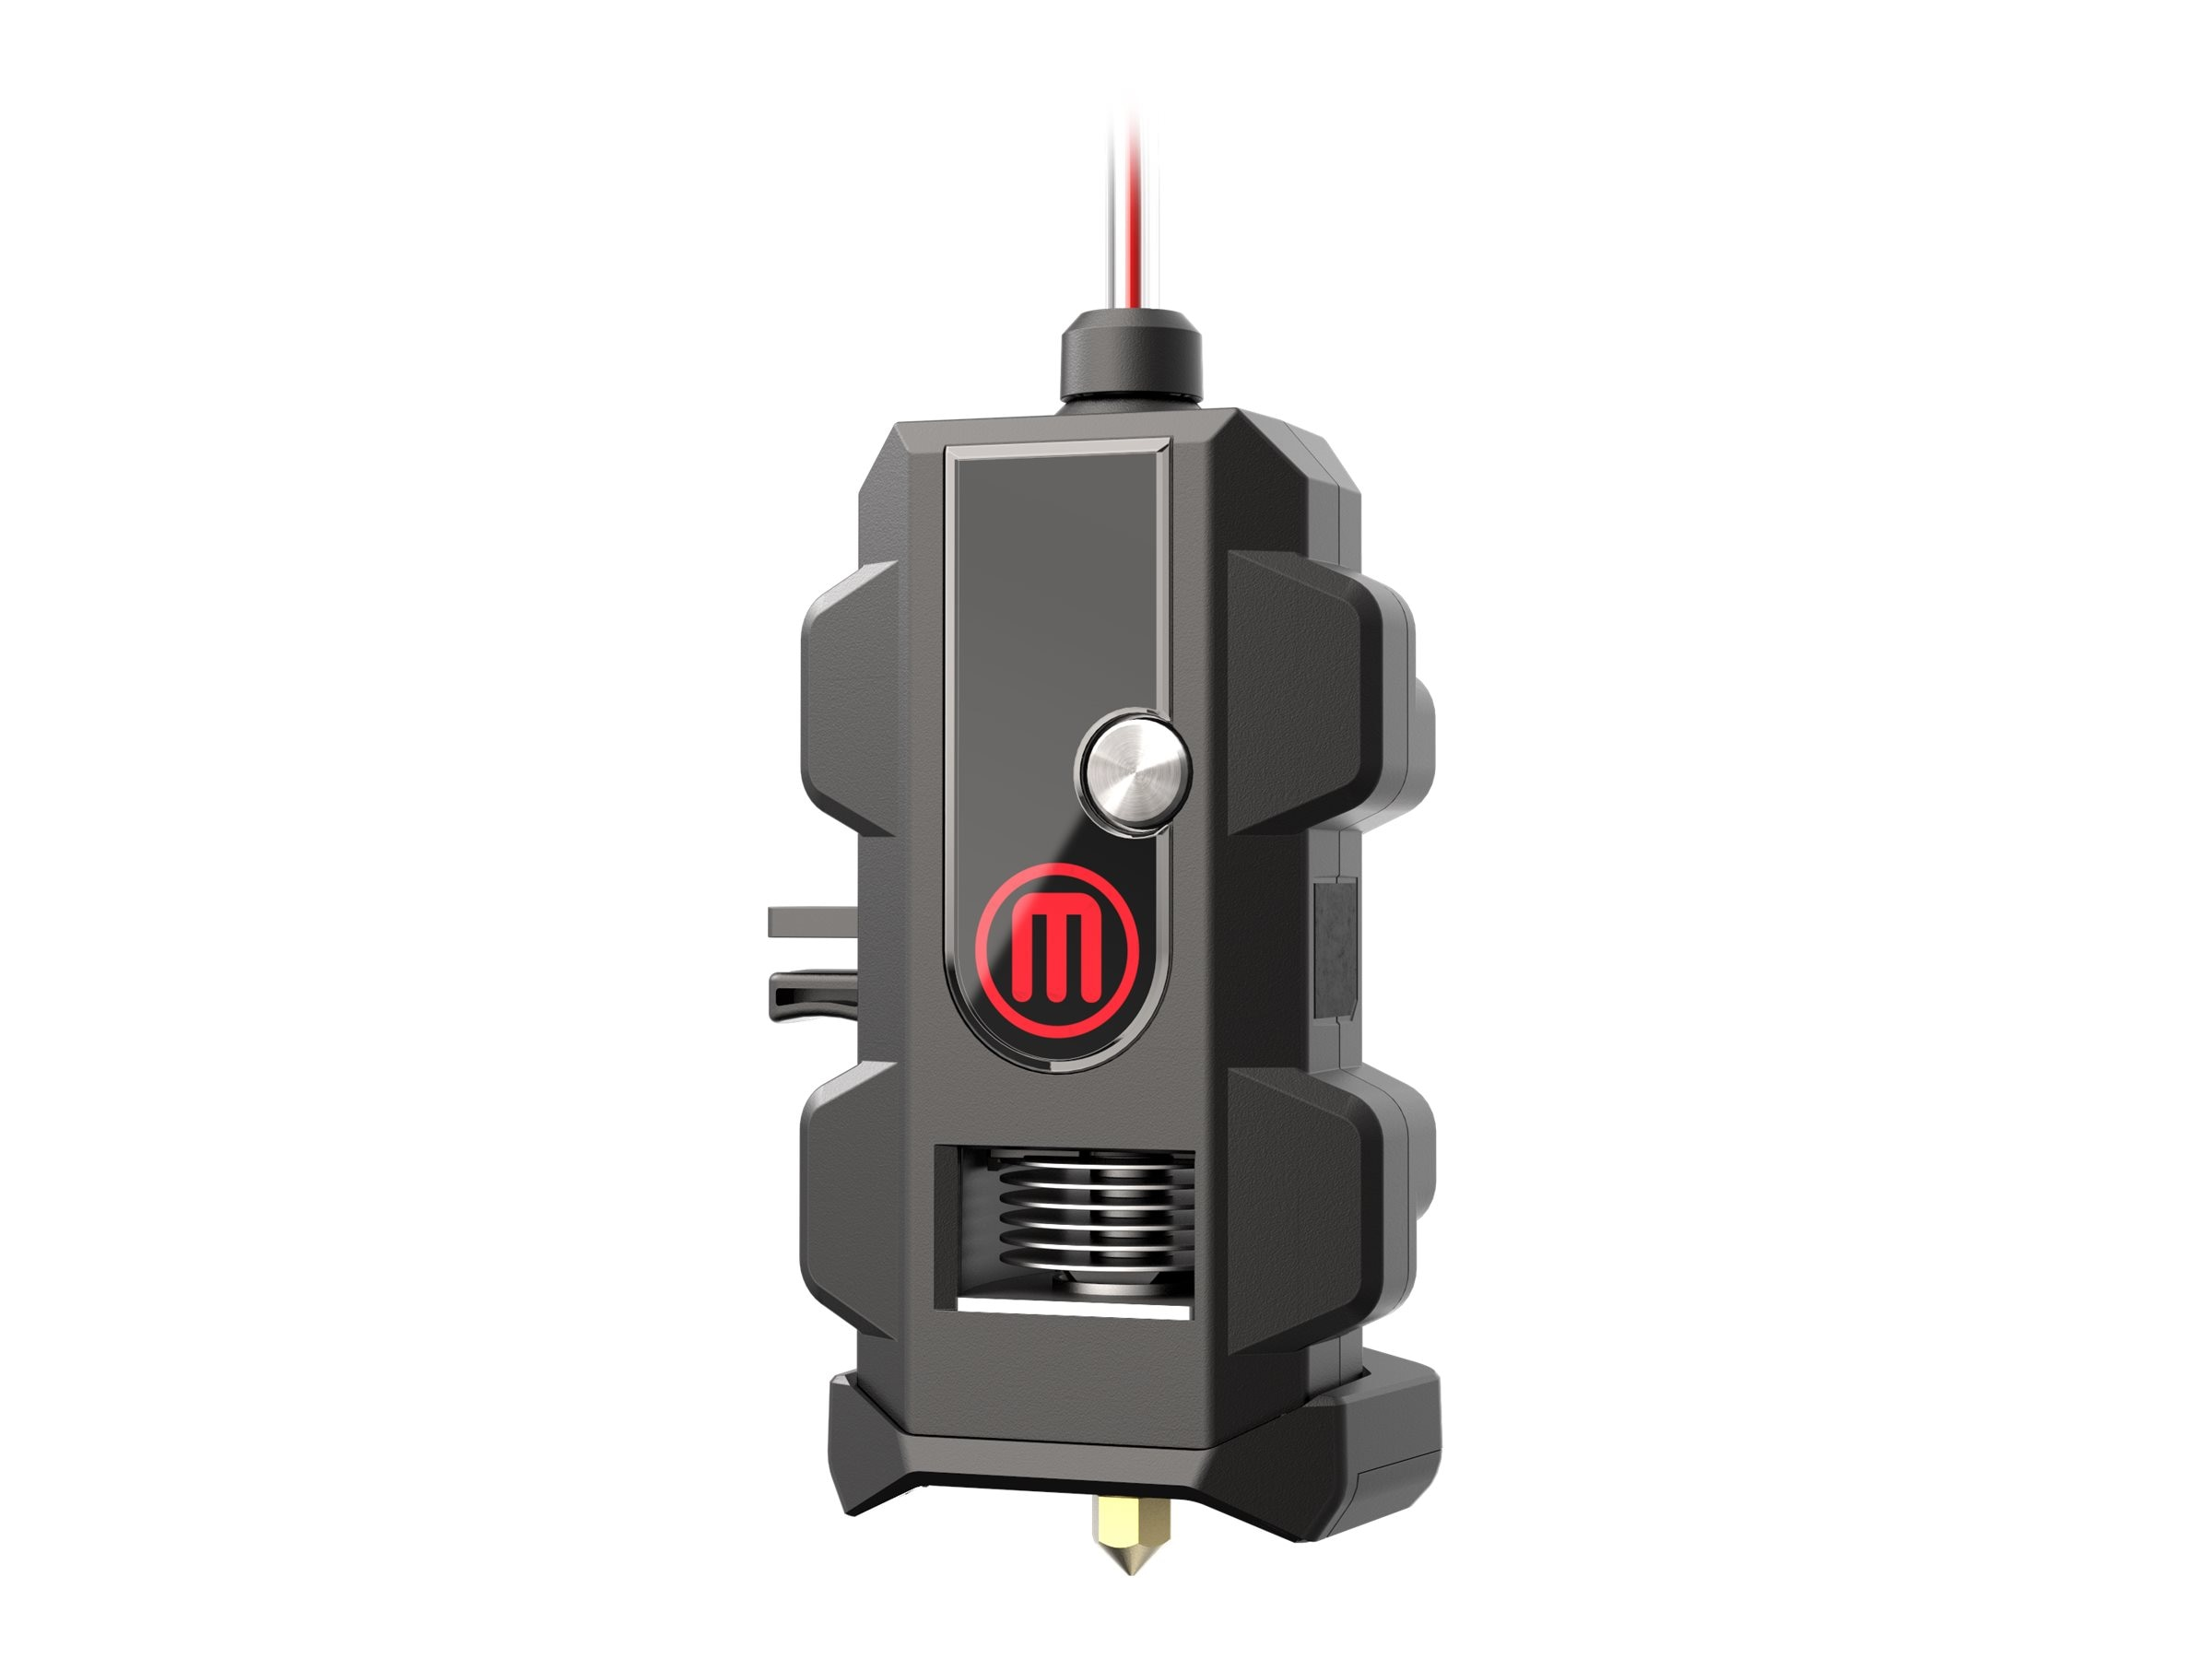 MakerBot Smart Extruder Rep 5th Gen Min, MP07325, 31118124, Printer Supplies - 3D